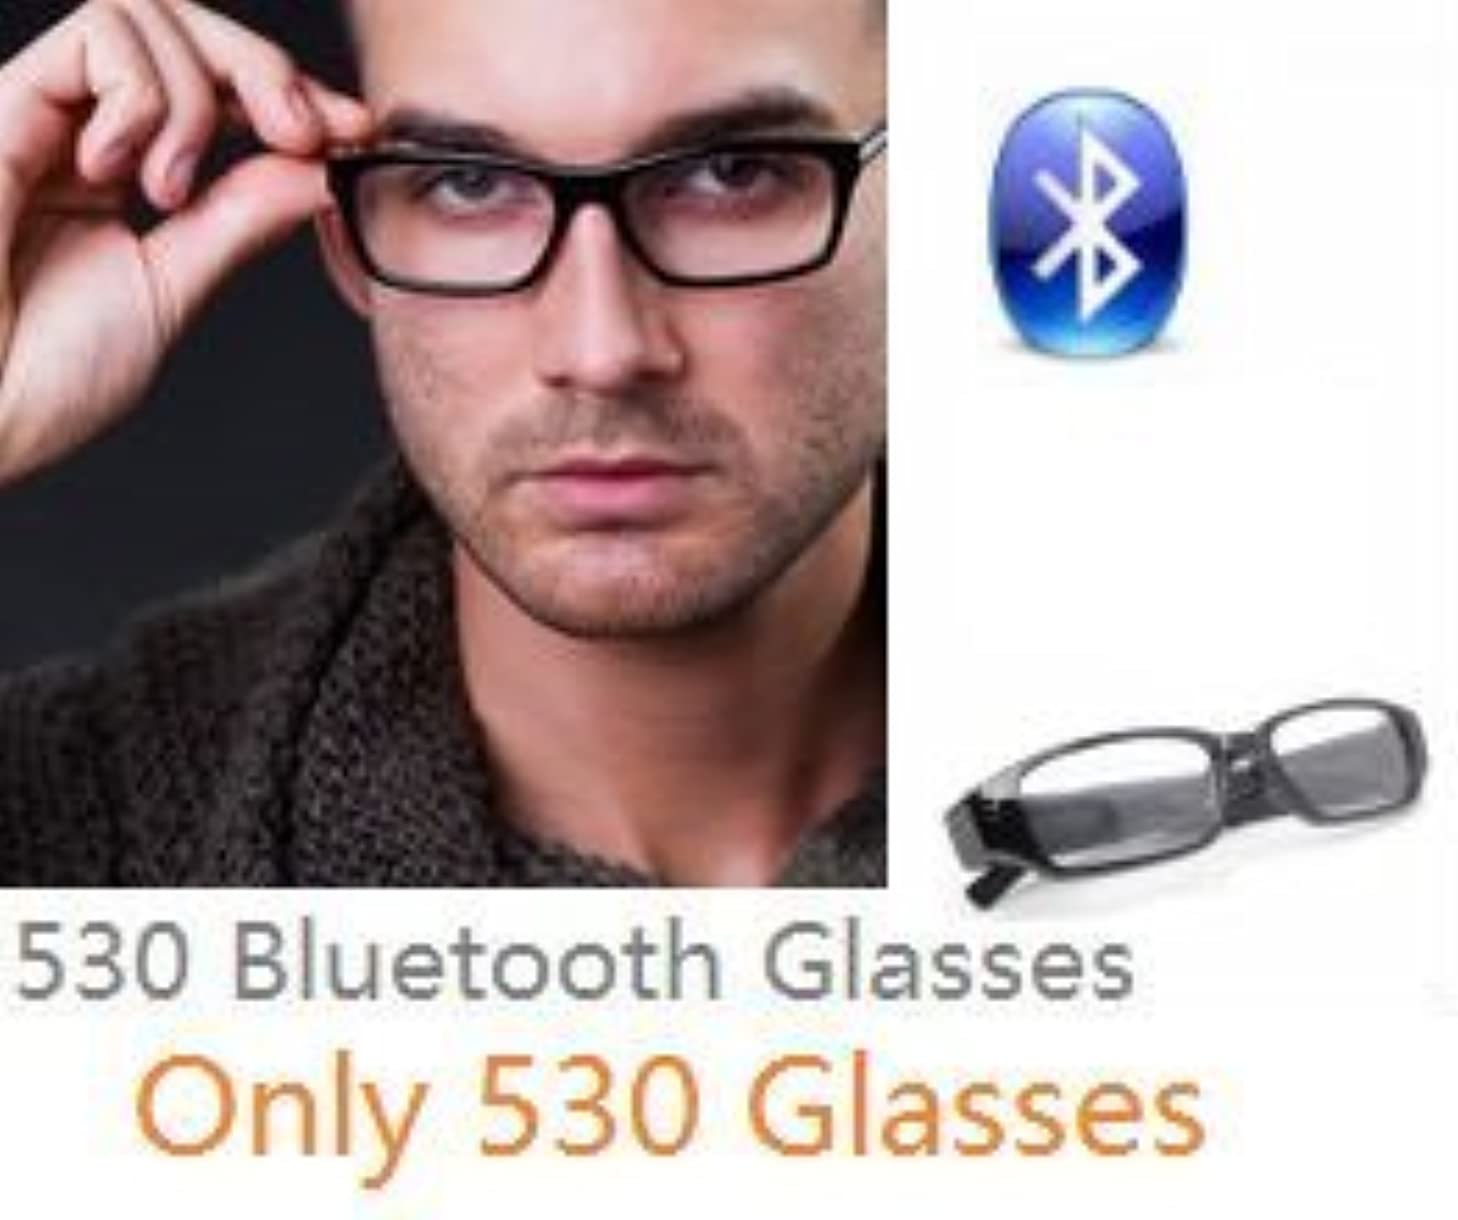 EDIMAEG 530 Bluetooth Glasses For mini wireless spy earpiece as A Full Hands free Talking Kit Really Glasses even can change lens (Only Glasses)